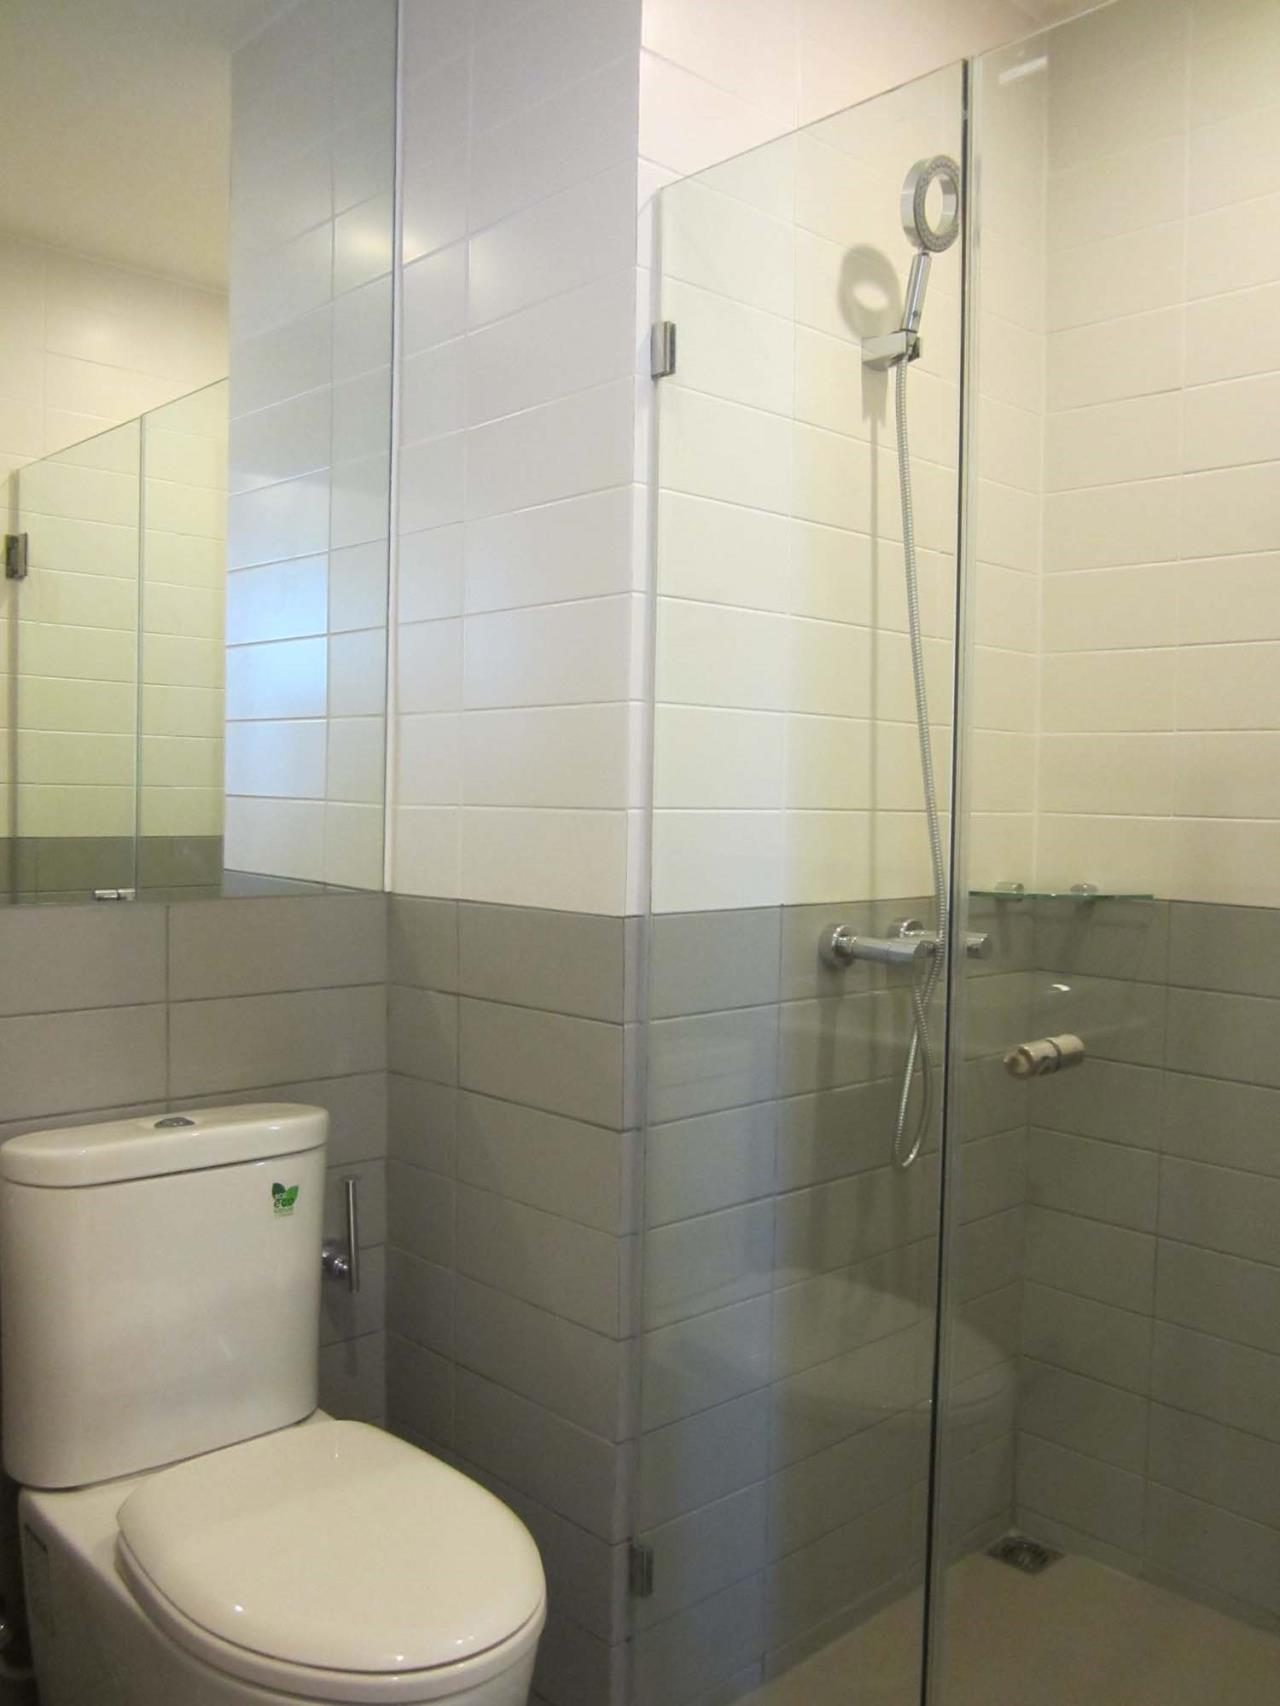 Piri Property Agency's 2 bedrooms  For Rent Ideo Mobi Onnut 12